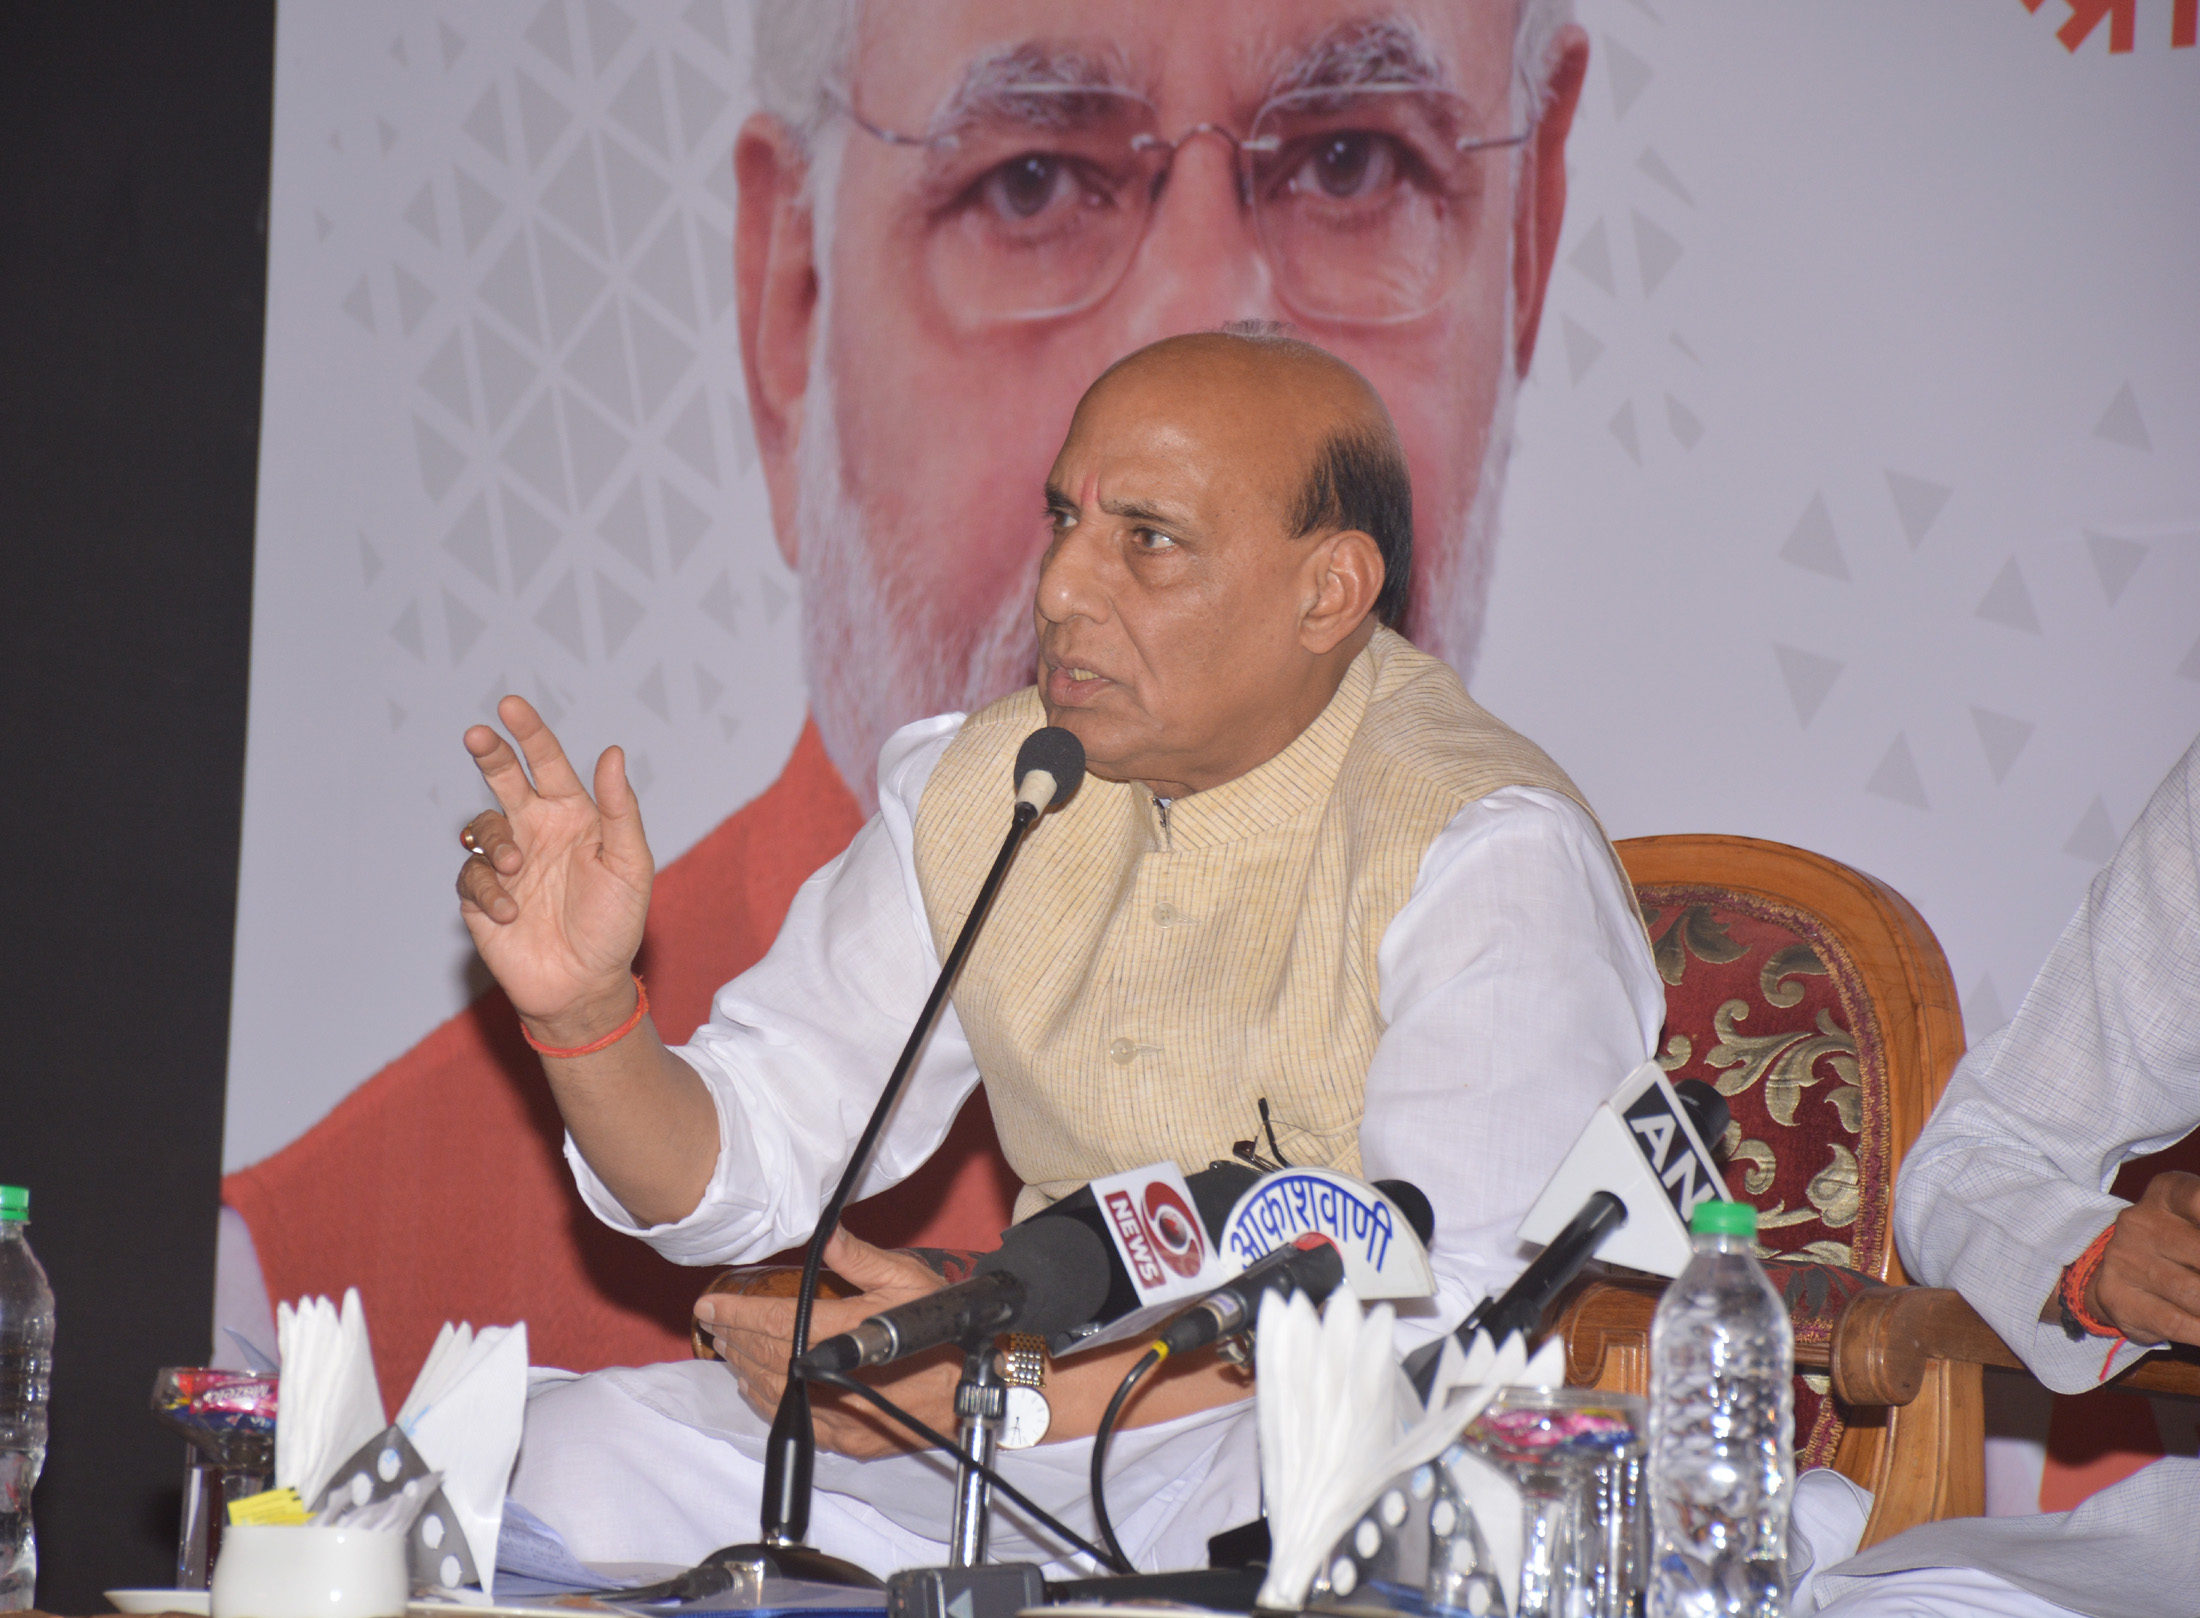 The Union Home Minister, Shri Rajnath Singh addressing a press conference, in Bhopal, Madhya Pradesh on May 31, 2018.